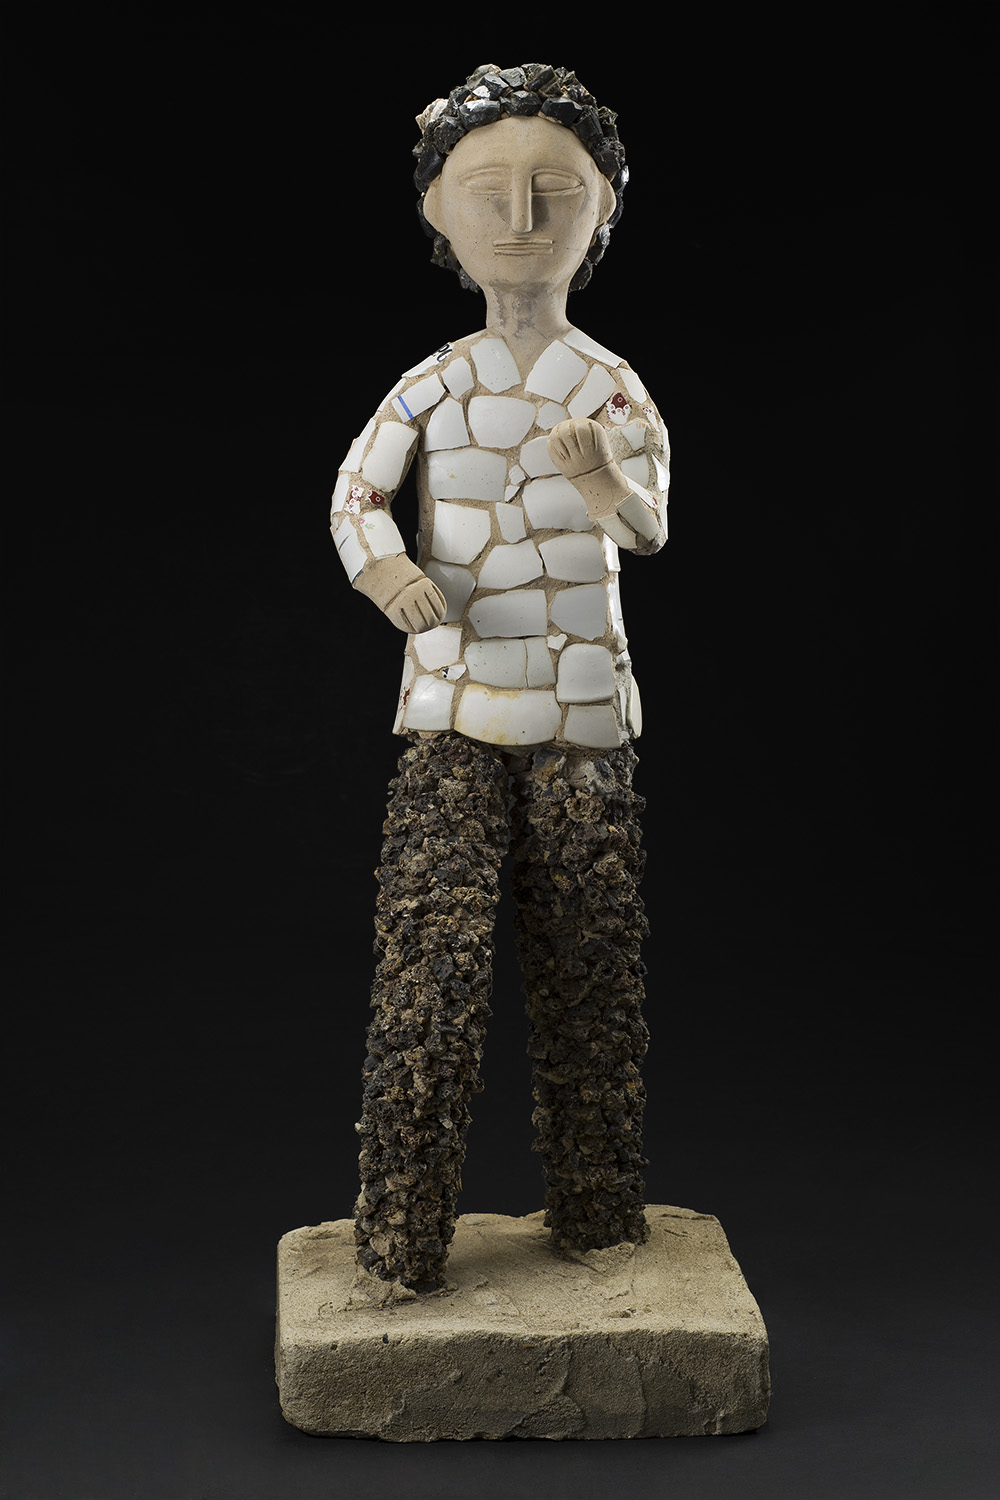 Nek Chand    Untitled  , 1950-1980 Concrete over metal armature with mixed media 34 x 12 x 12 inches 86.4 x 30.5 x 30.5 cm NC 10